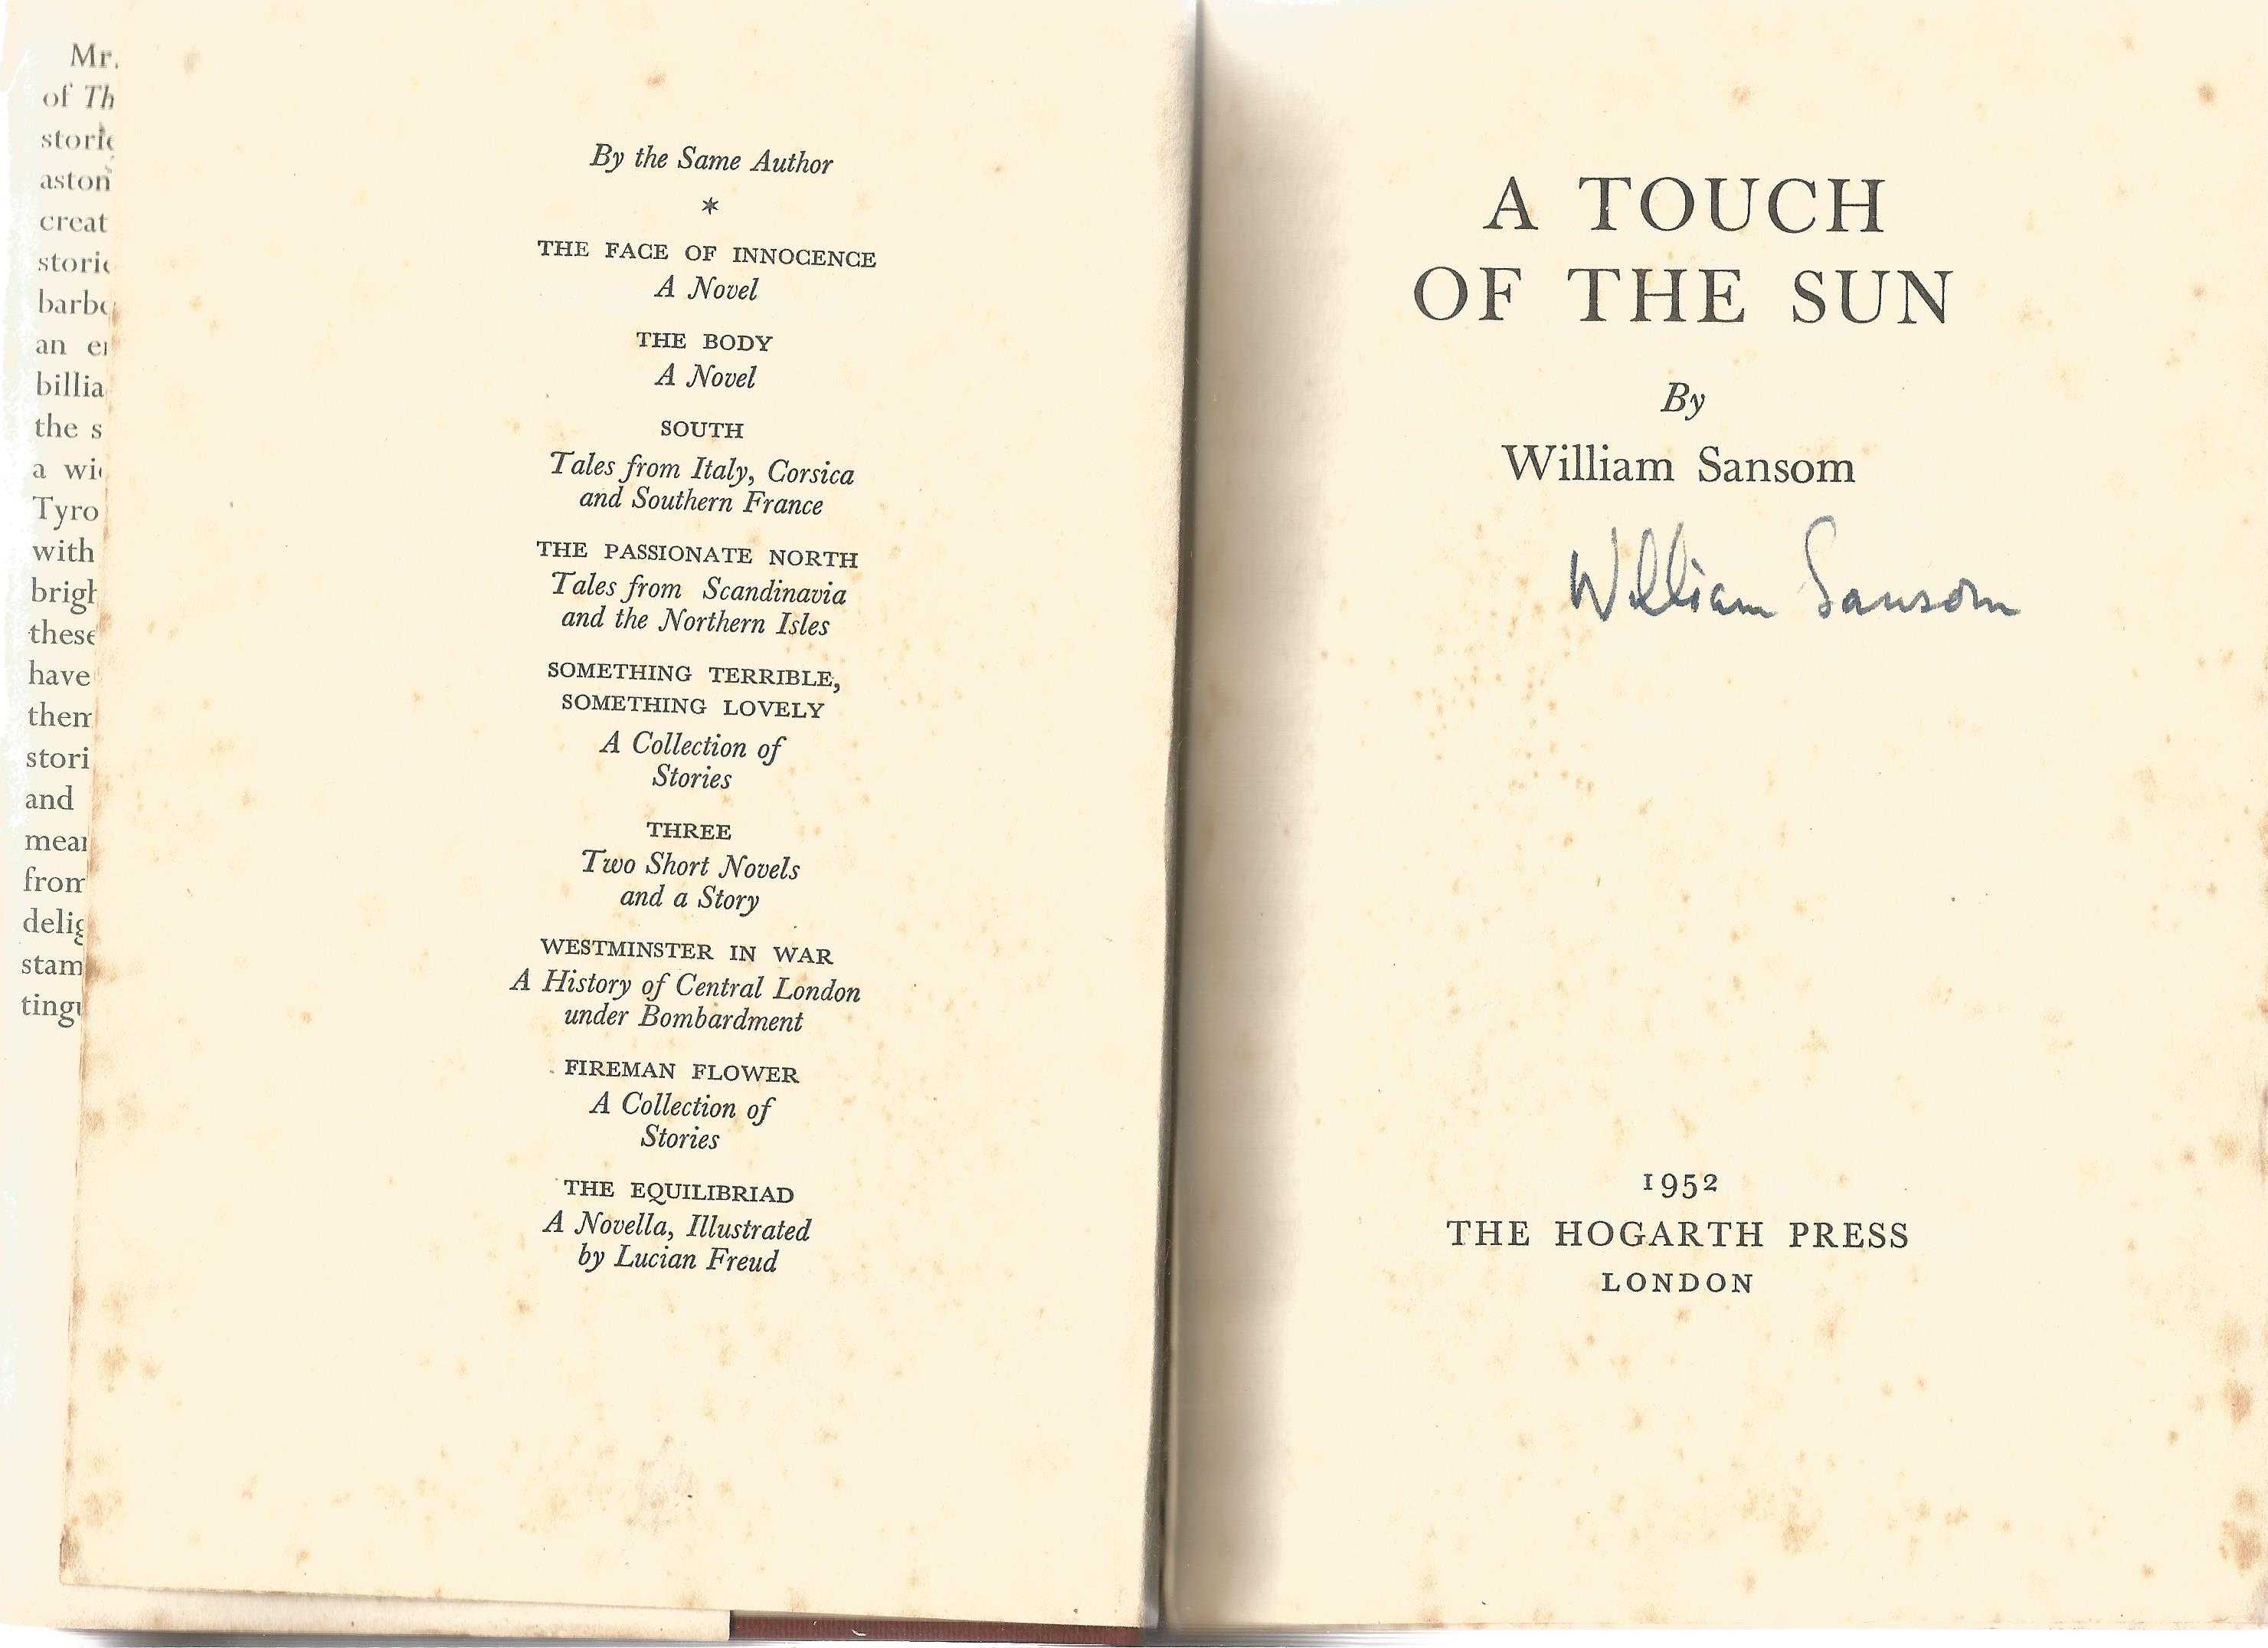 William Sansom Hardback Book A Touch of the Sun 1952 signed by the Author on the Title Page some - Image 2 of 3